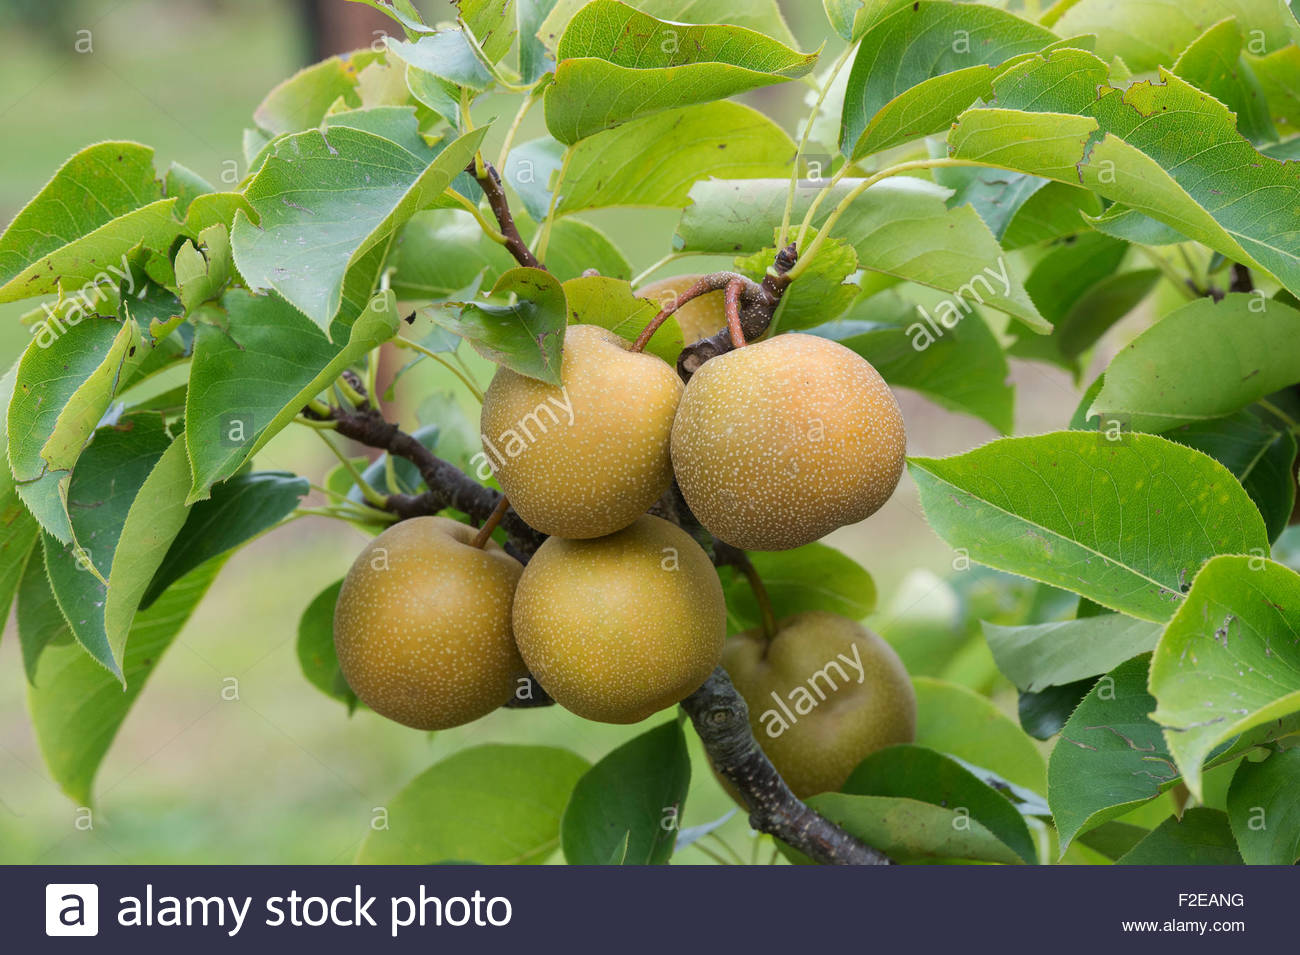 Shinko asian pear edible landscaping - Asian Pears Niitaka Stock Image